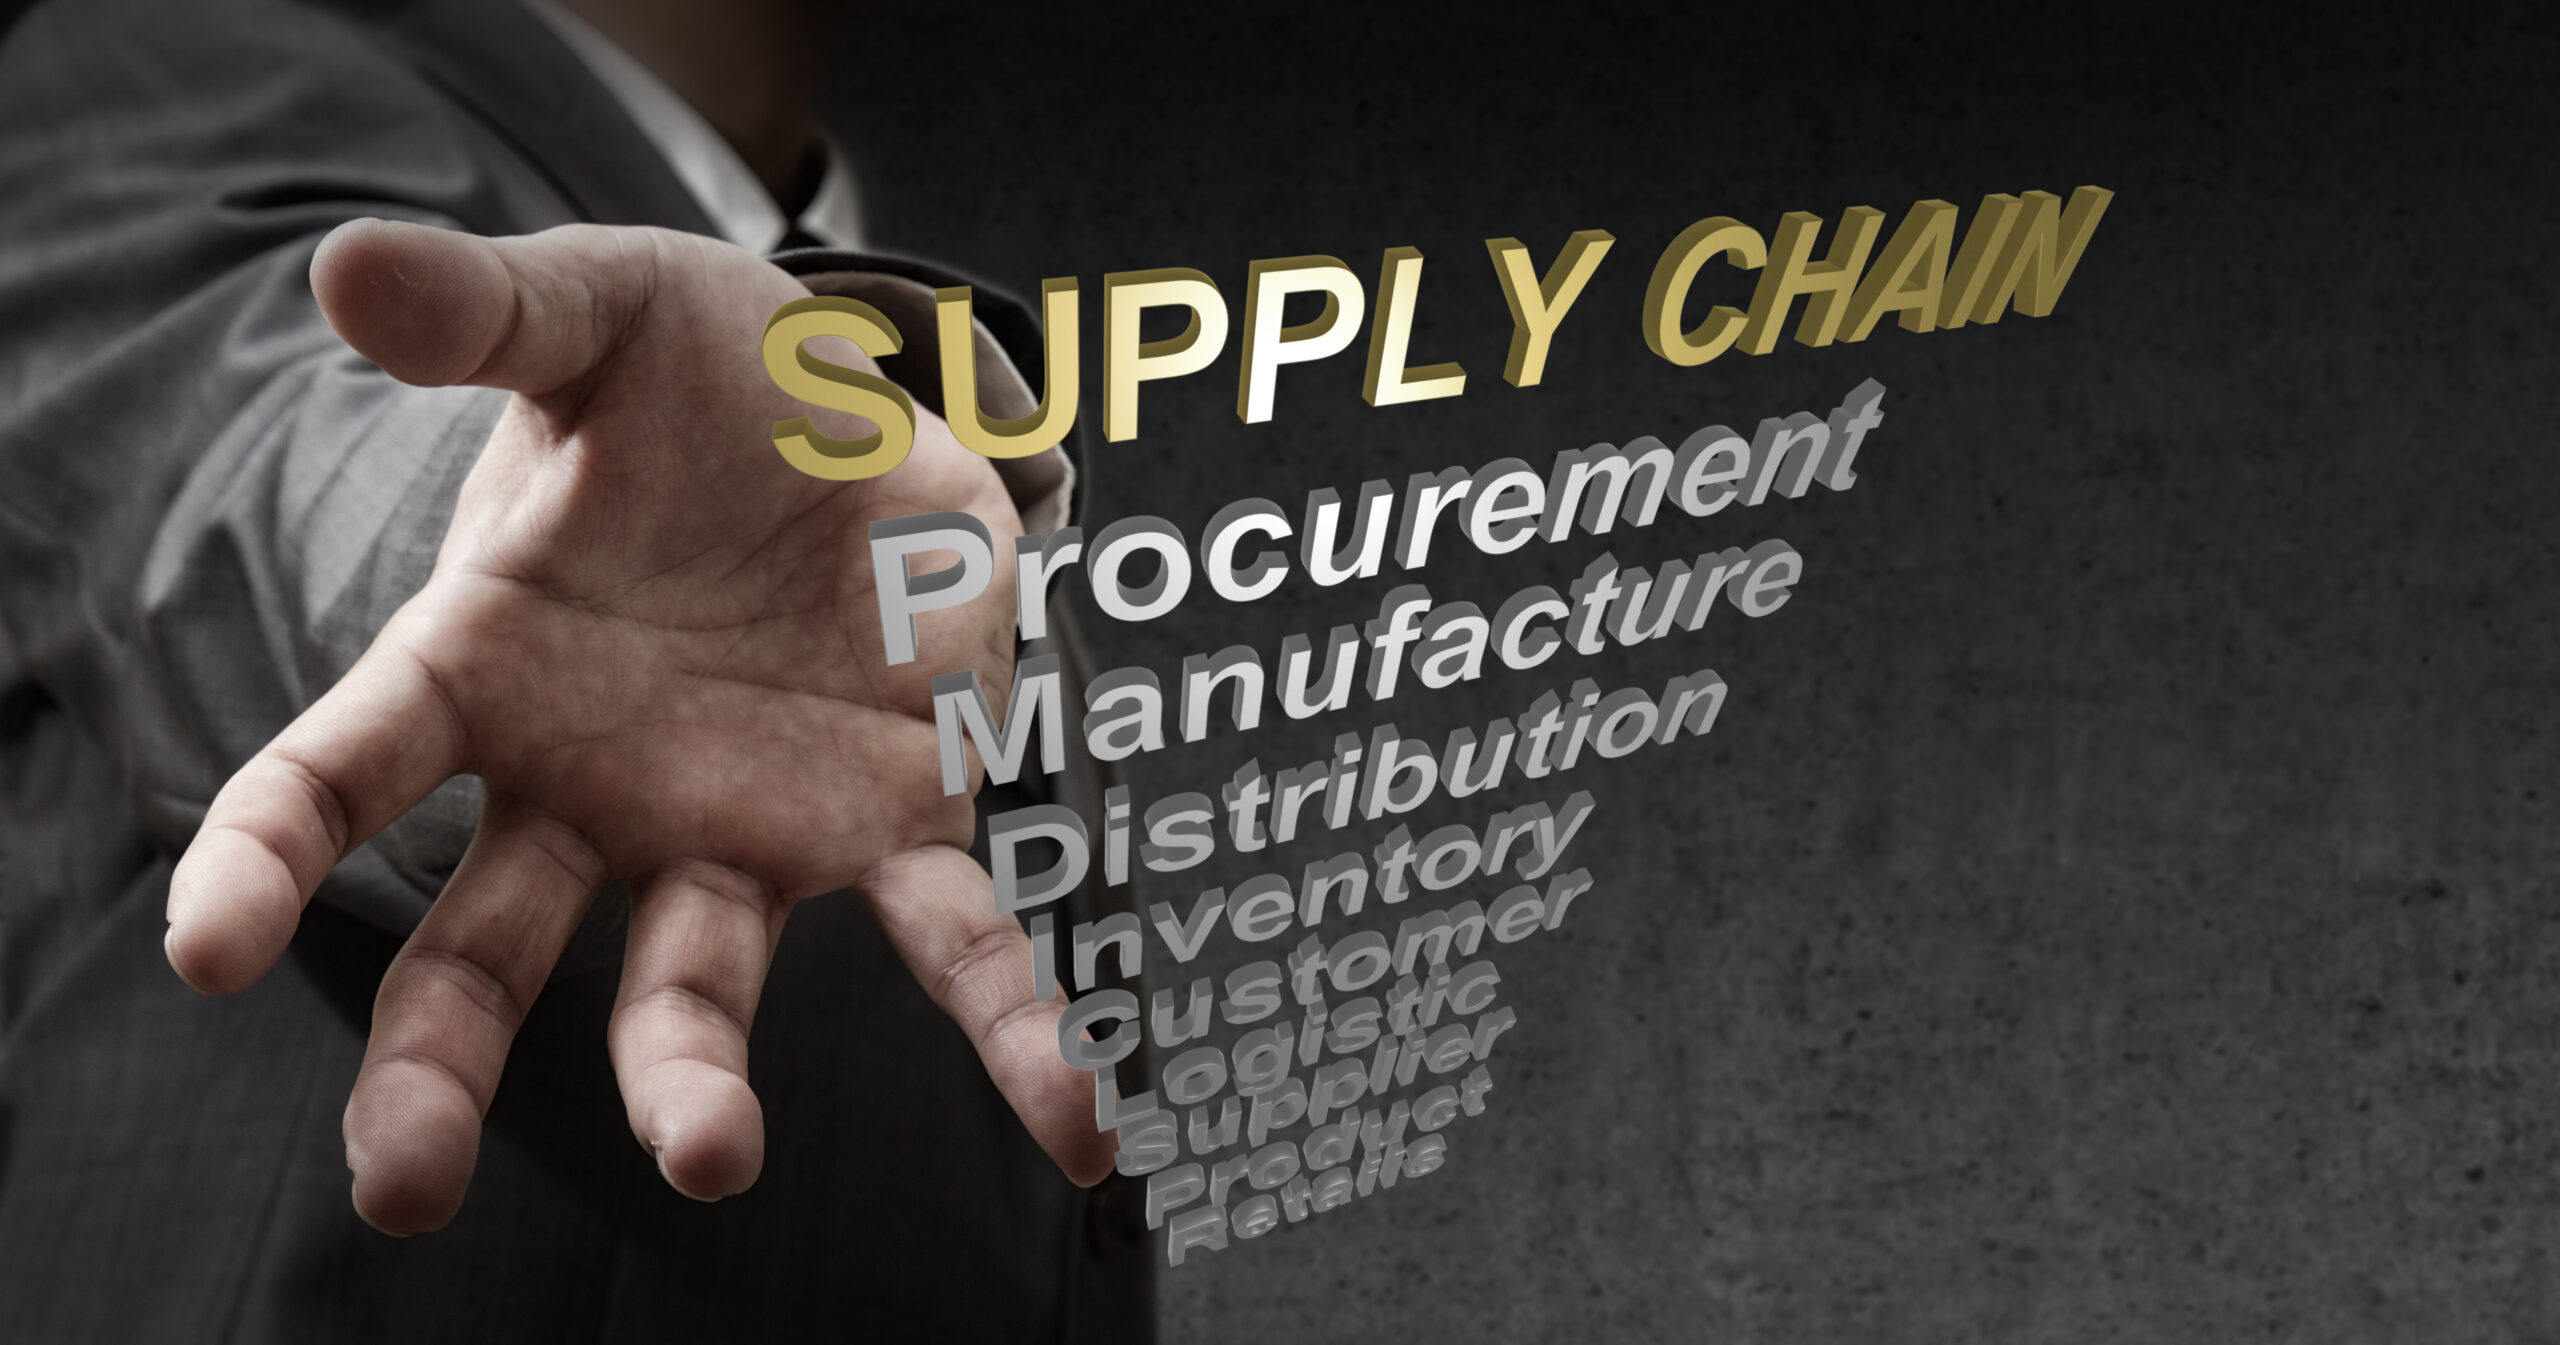 In the market for Procurement Software? Here's a quick guide to help you evaluate your options